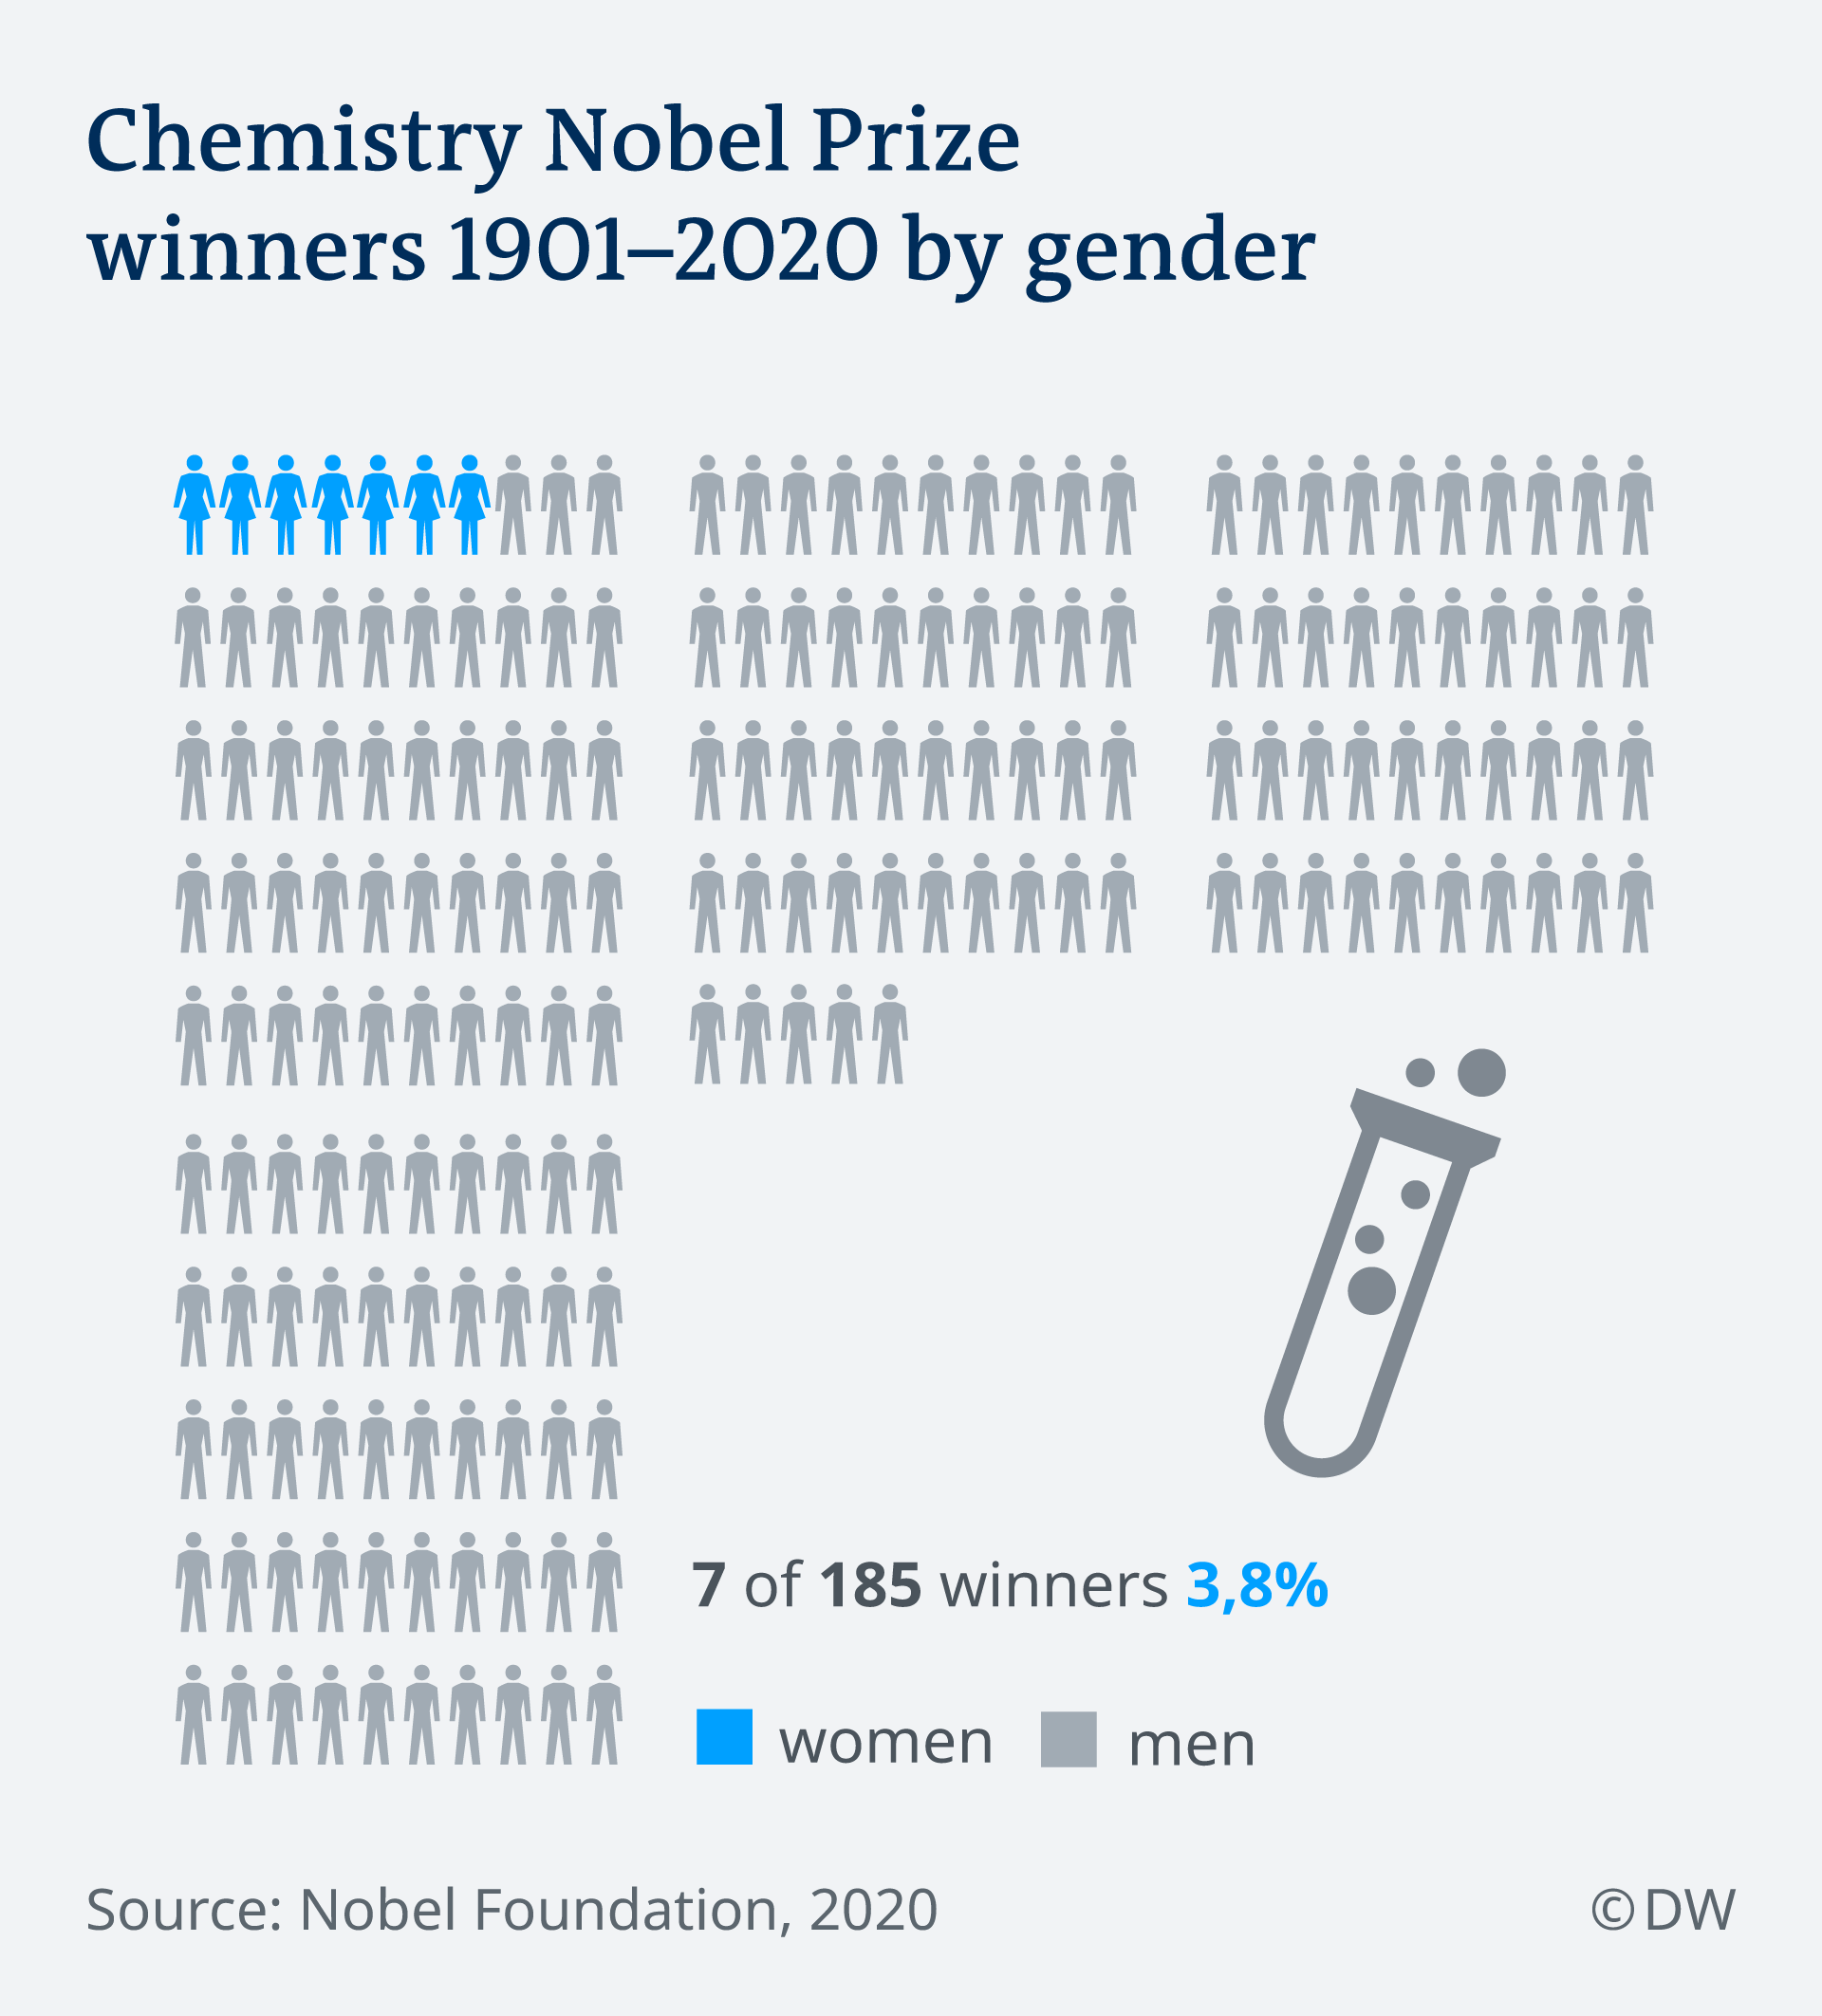 Only seven women have won the prize, including Marie Curie